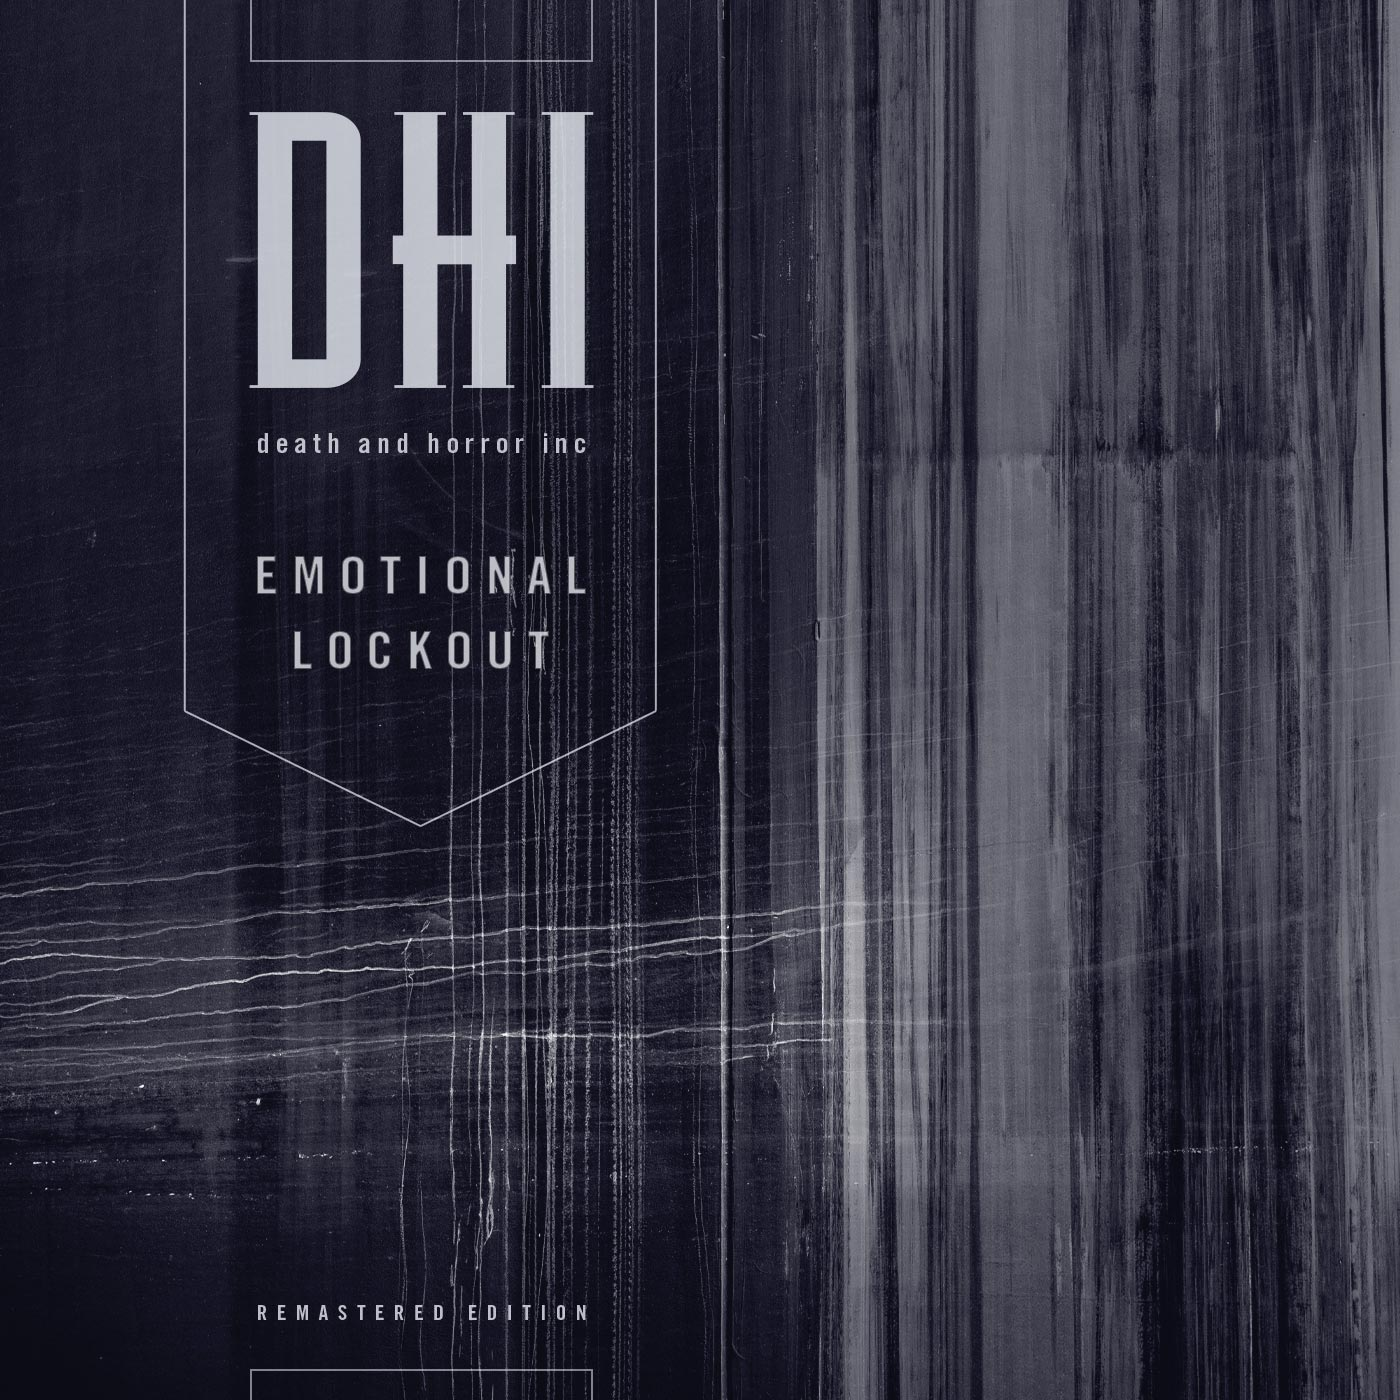 DHI (death and horror inc) Emotional Lockout cover